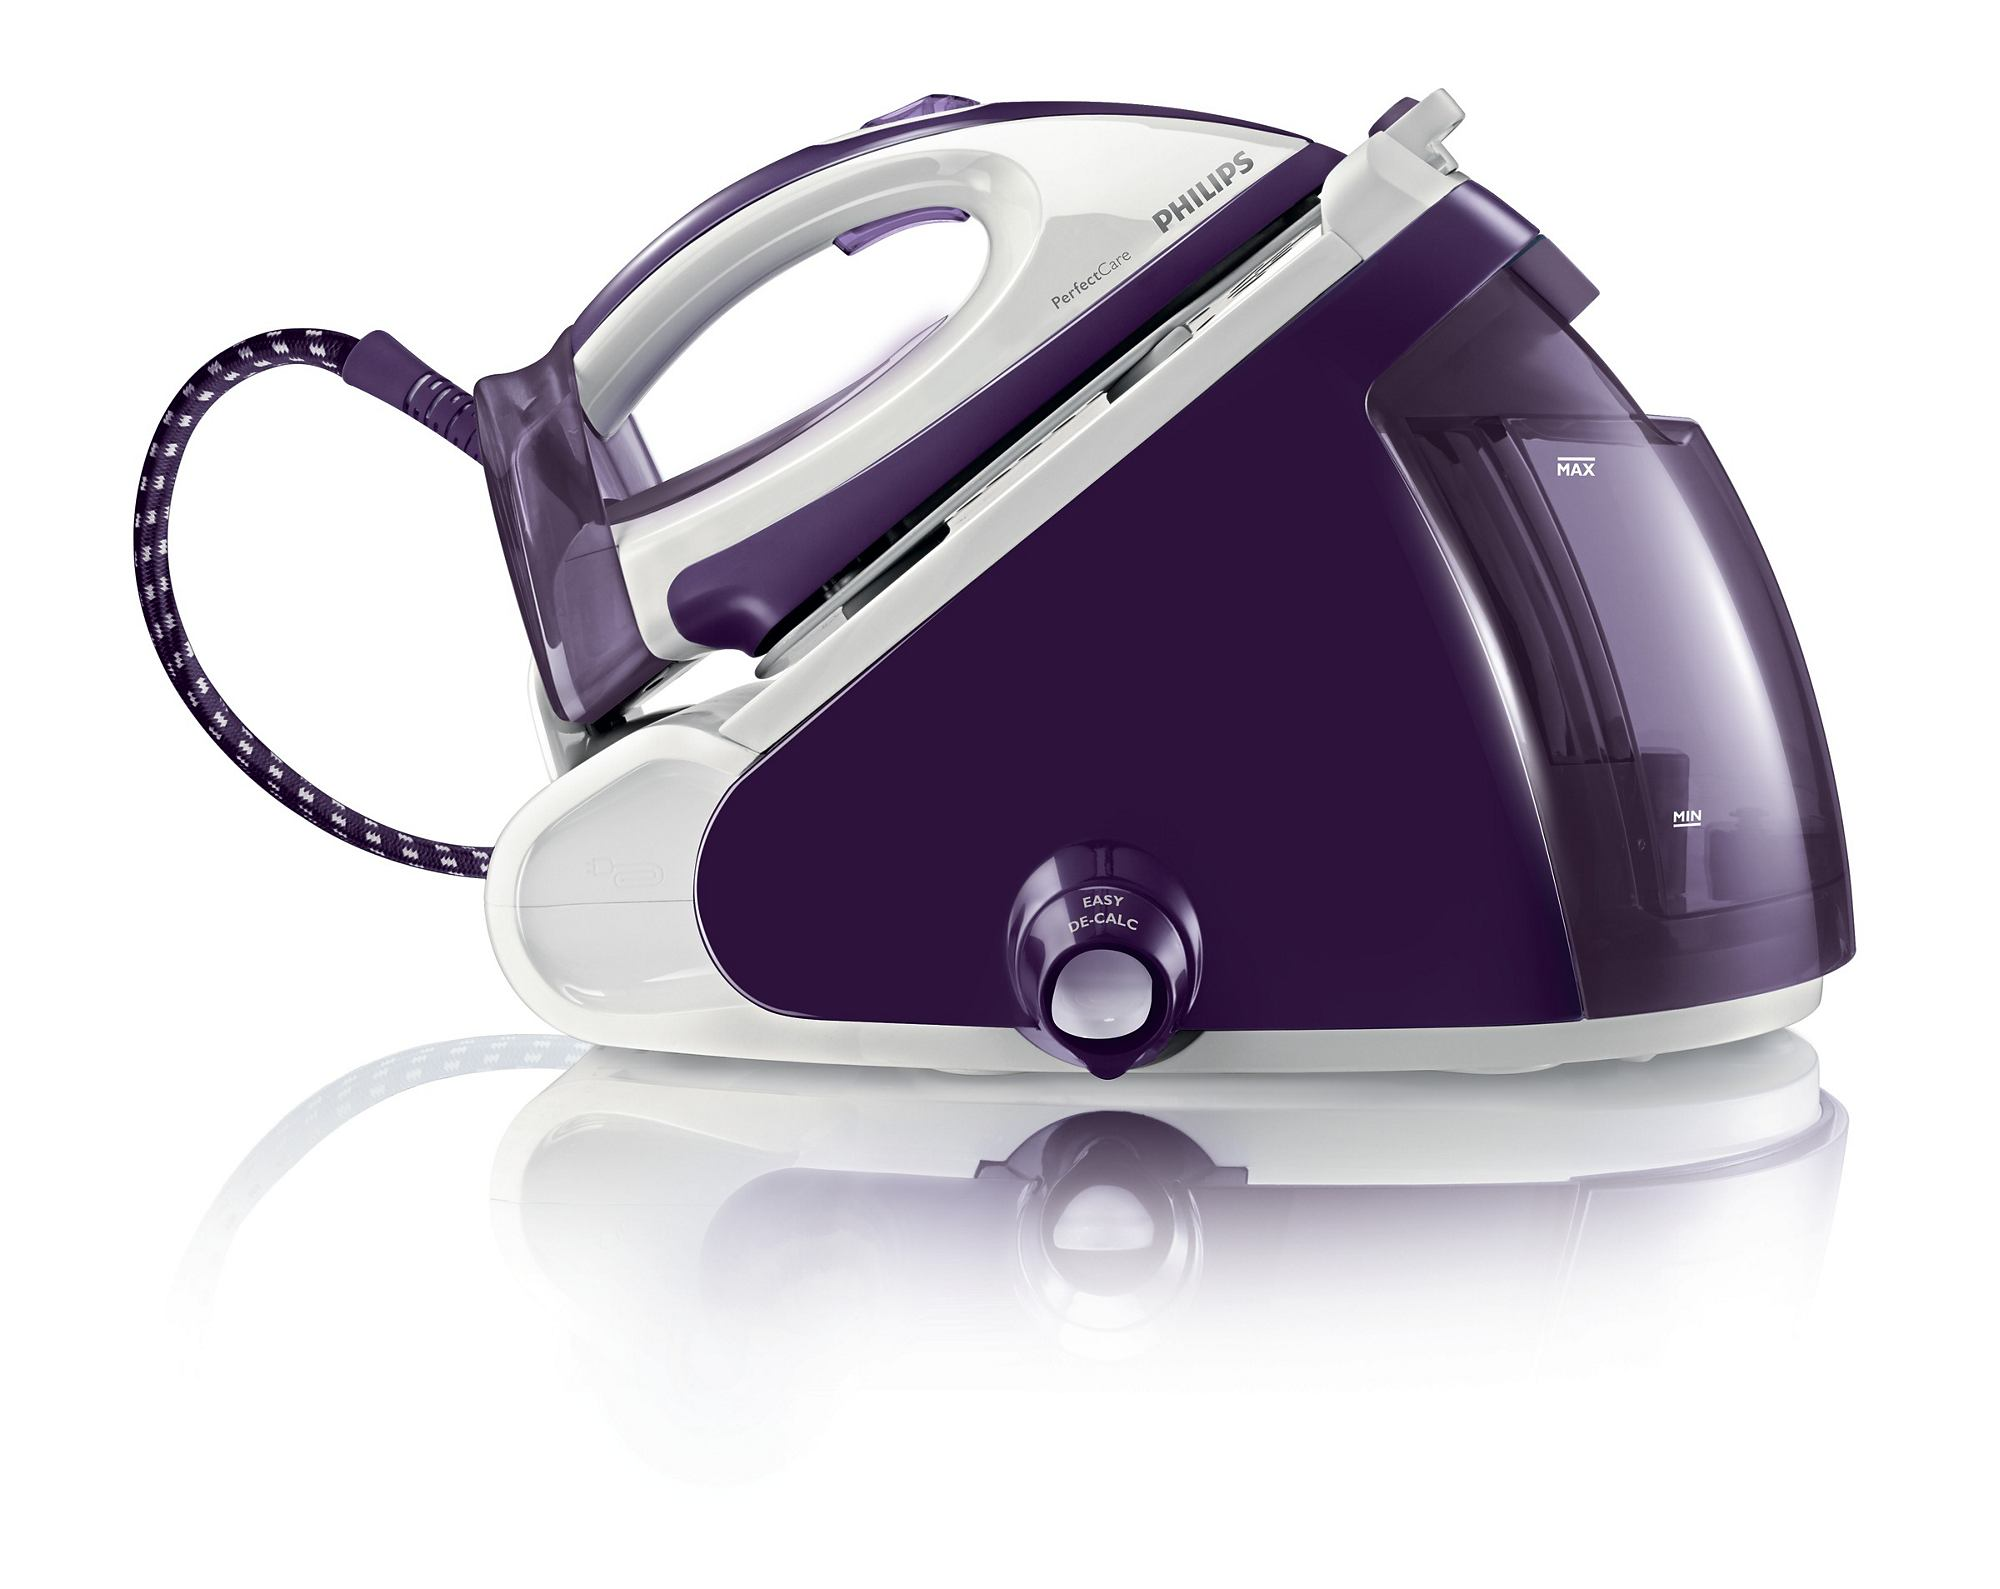 philips gc9240 02 perfect care steam generator iron ebay. Black Bedroom Furniture Sets. Home Design Ideas